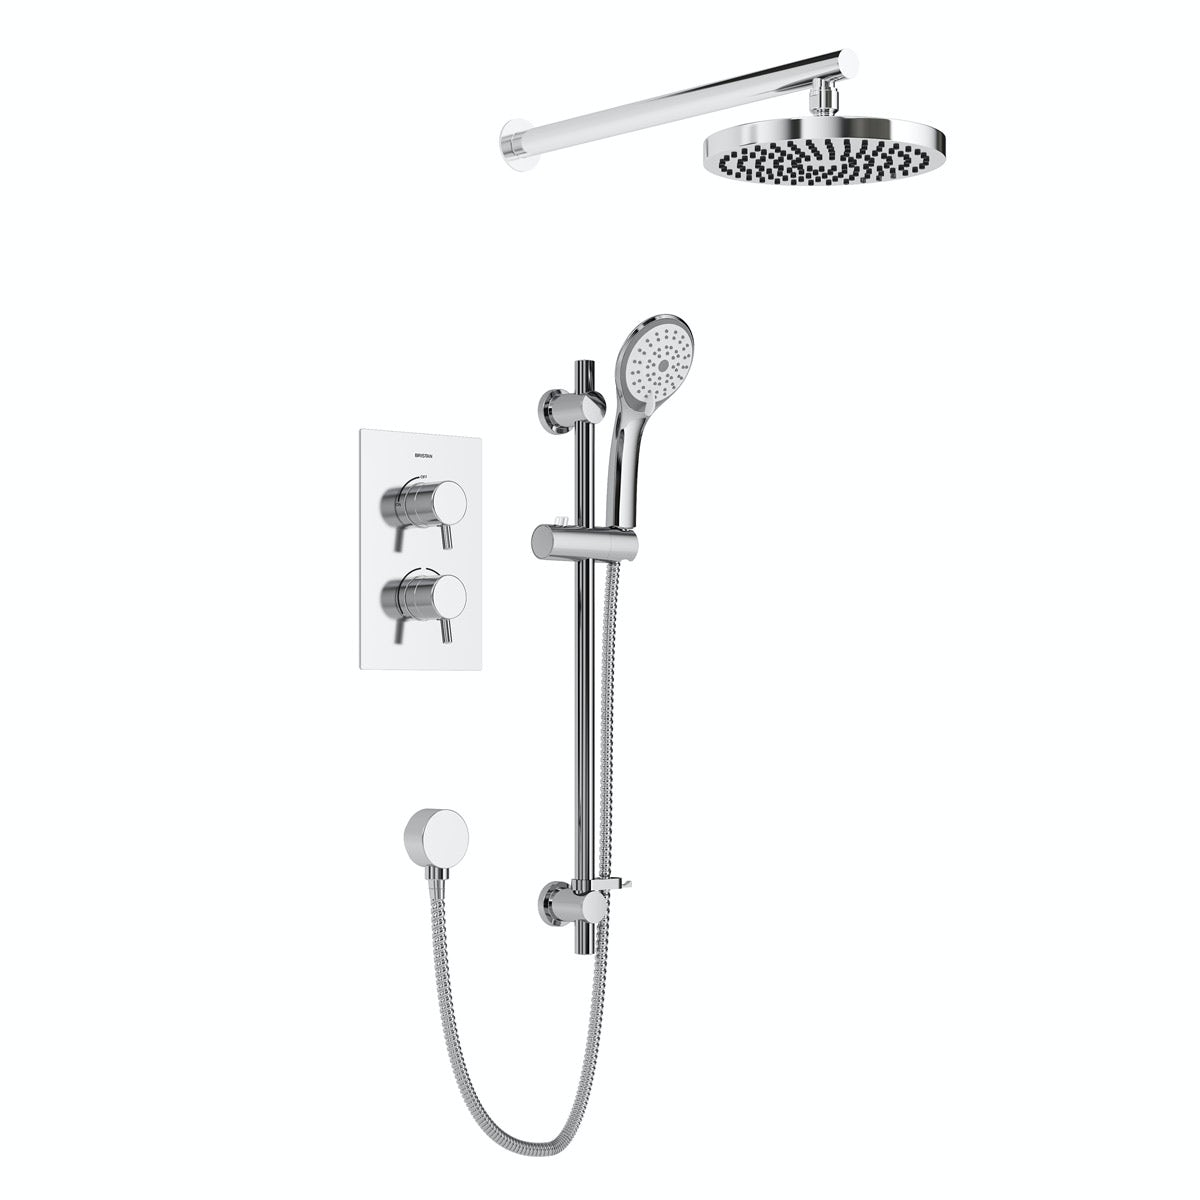 Bristan Prism concealed thermostatic shower set